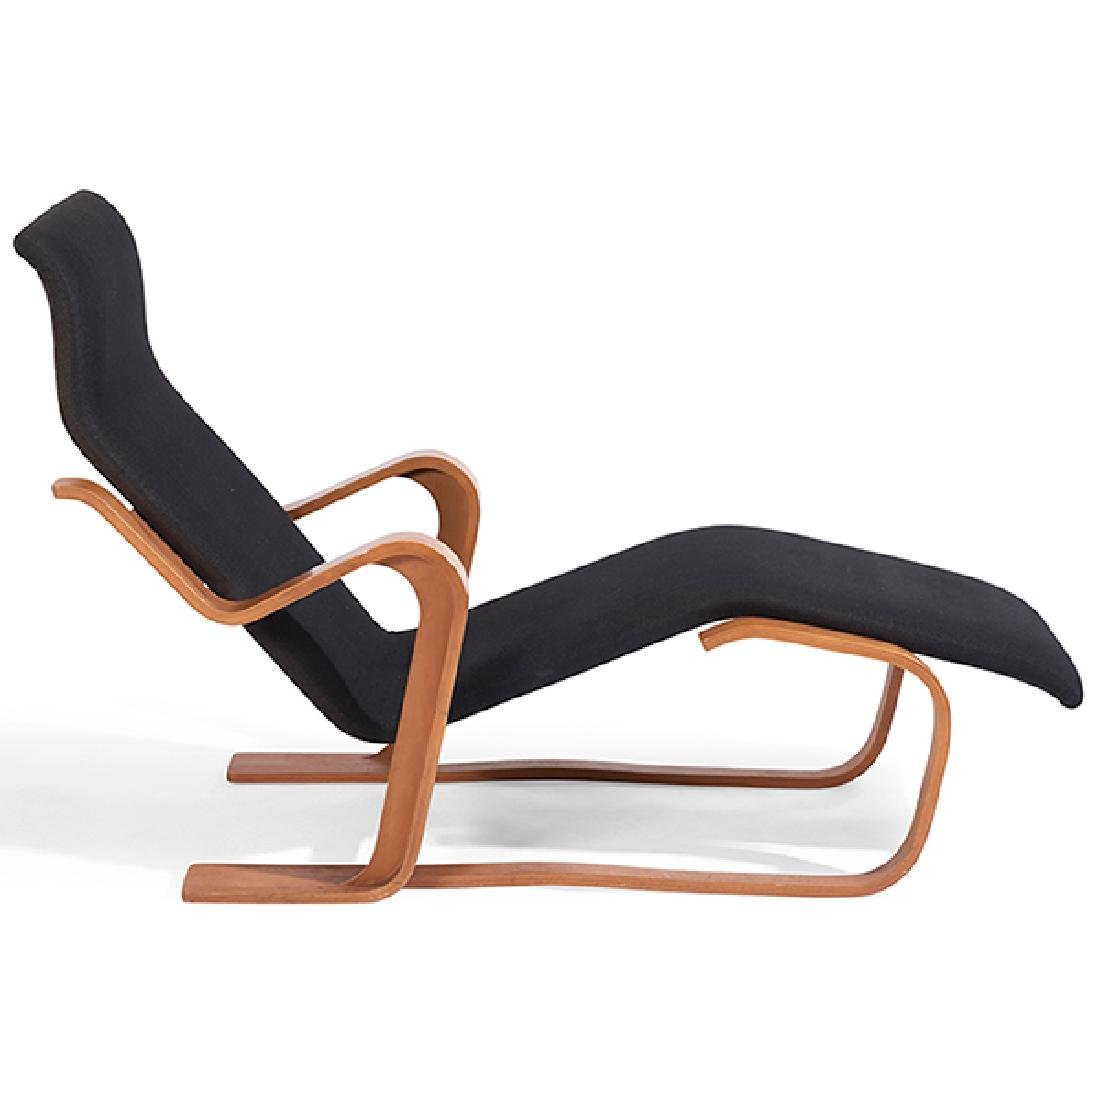 Marcel Breuer (1908-1981) for Knoll chaise lounge